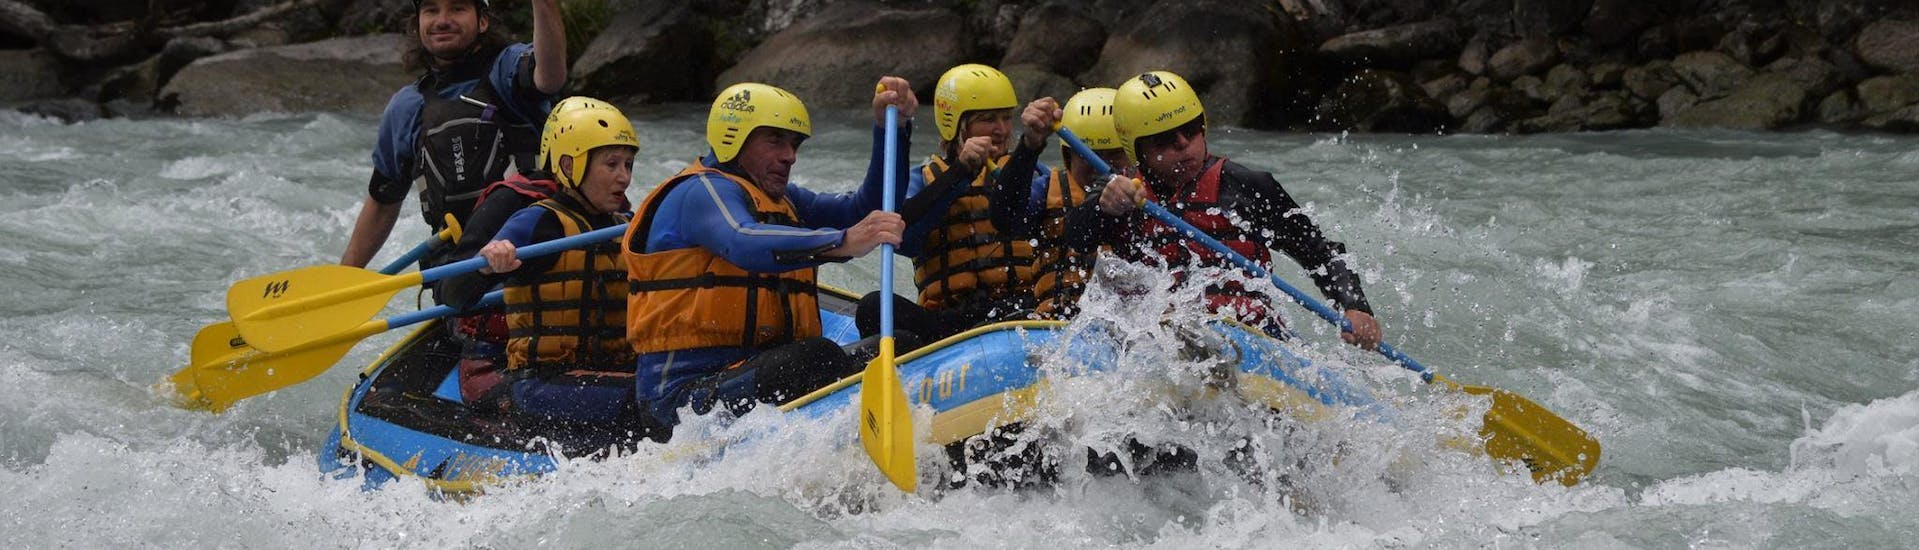 """During the rafting """"Extreme Tour"""" through Landeck Canyon, a group of rafting enthusiasts is concentrating on paddling through rapids with a certified rafting guide from WhyNot Adventures."""